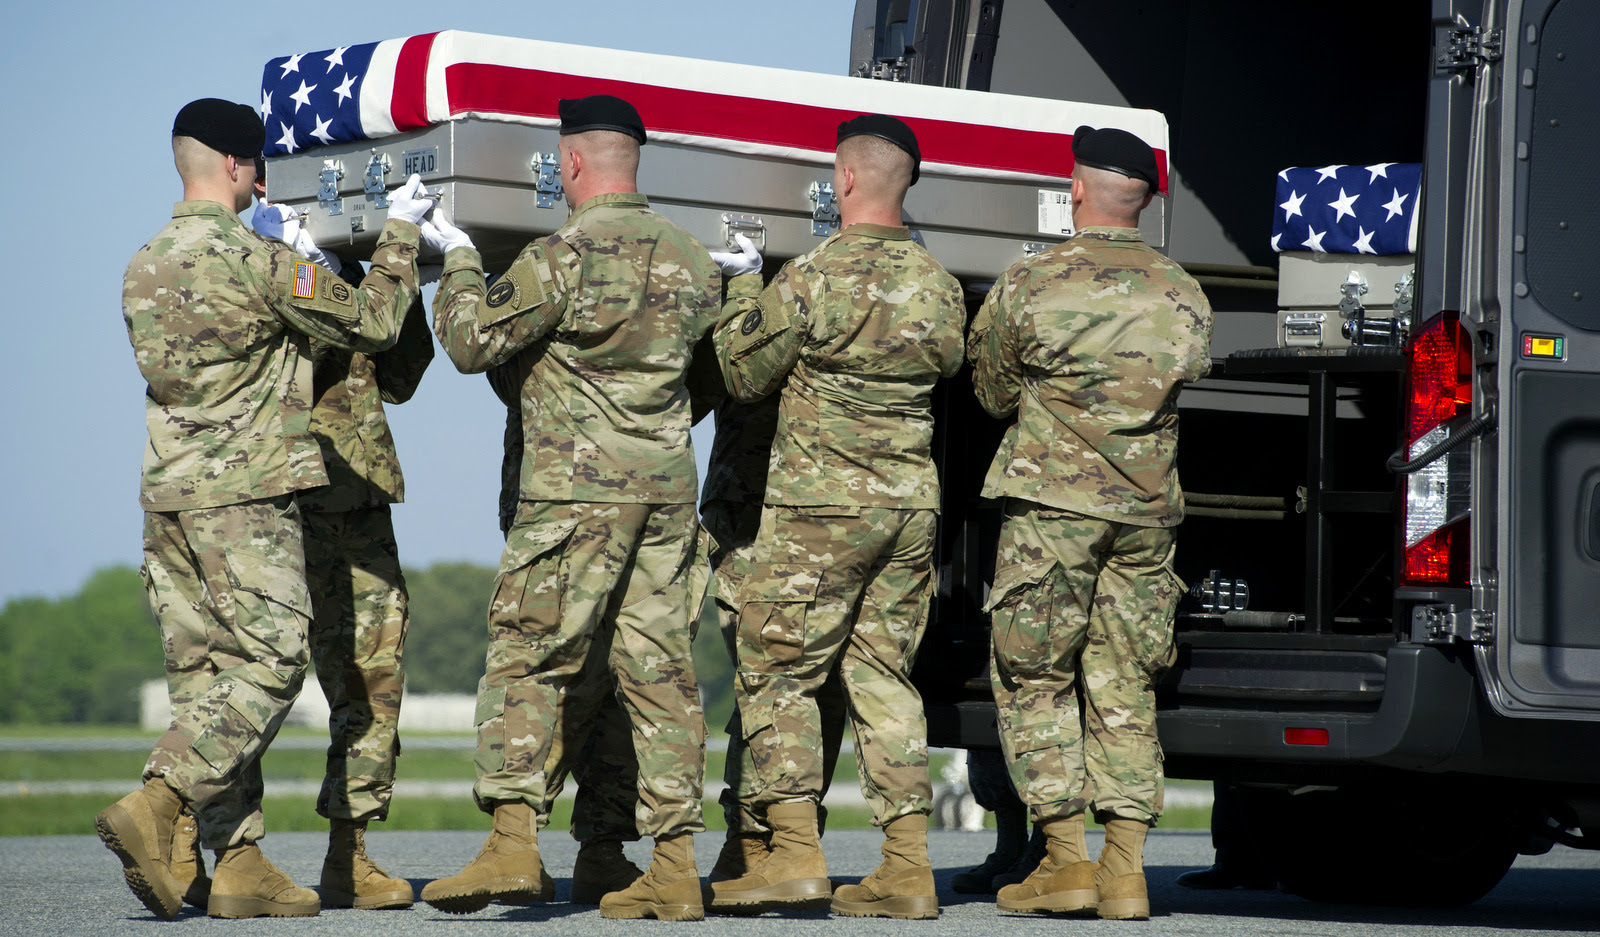 An Army carry team places the transfer case containing the remains of Army Sgt. Joshua Rodgers, 22, of Bloomington, Ill., who was killed during a raid on an alleged ISIS compound in eastern Afghanistan. (AP/Cliff Owen)